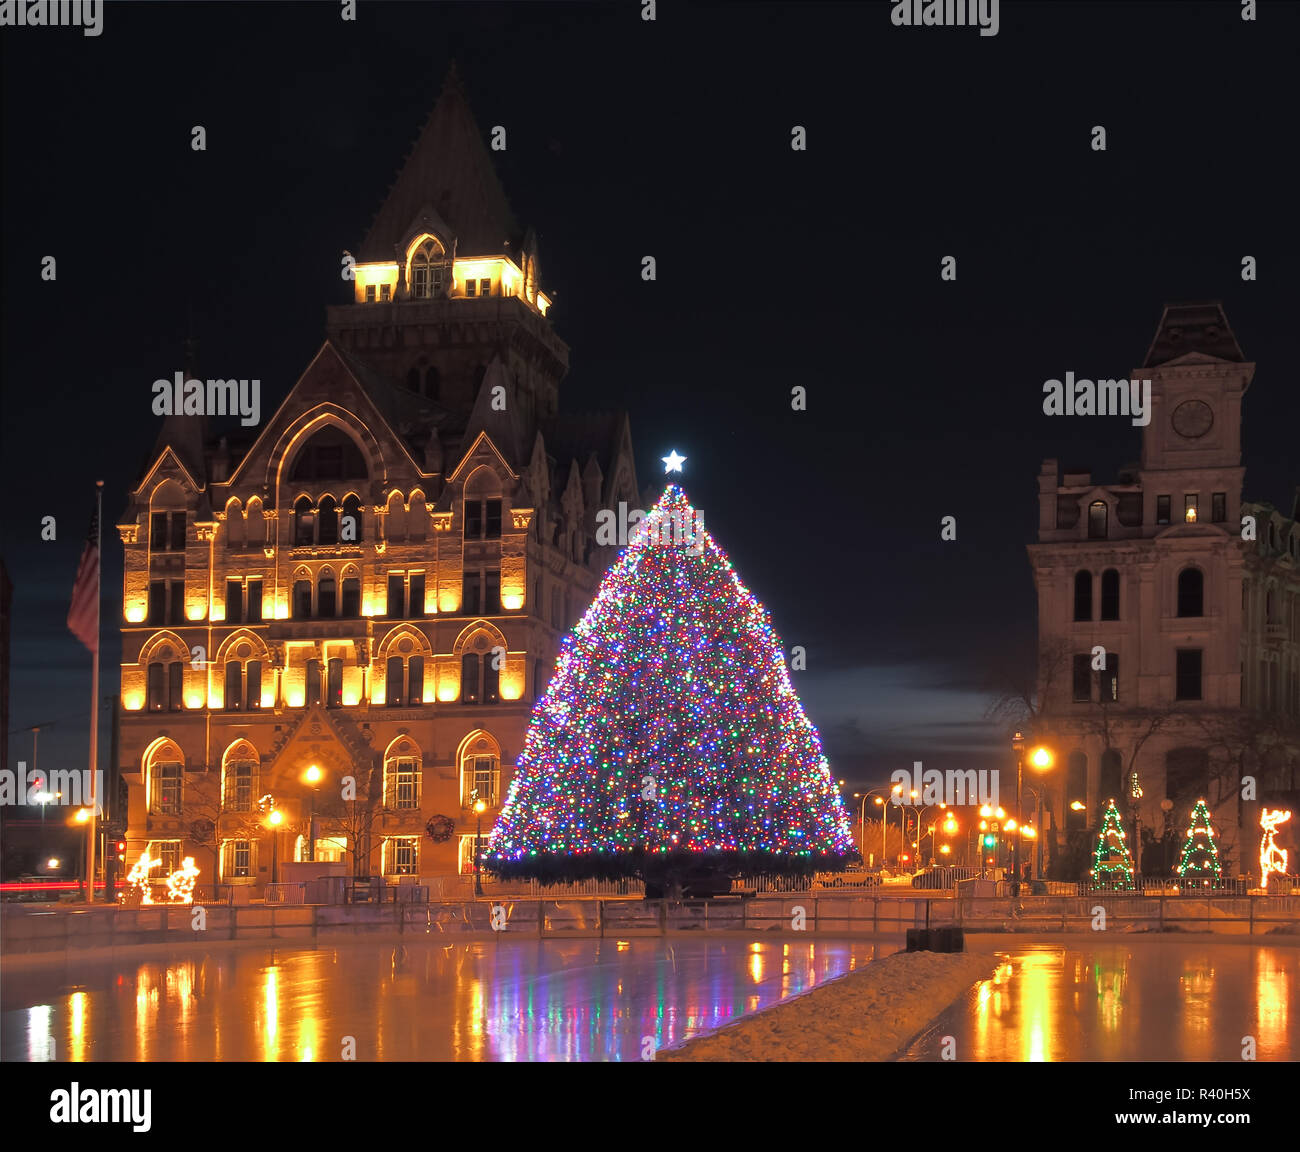 Downtown New York Christmas Decorations Stock Photos & Downtown New ...